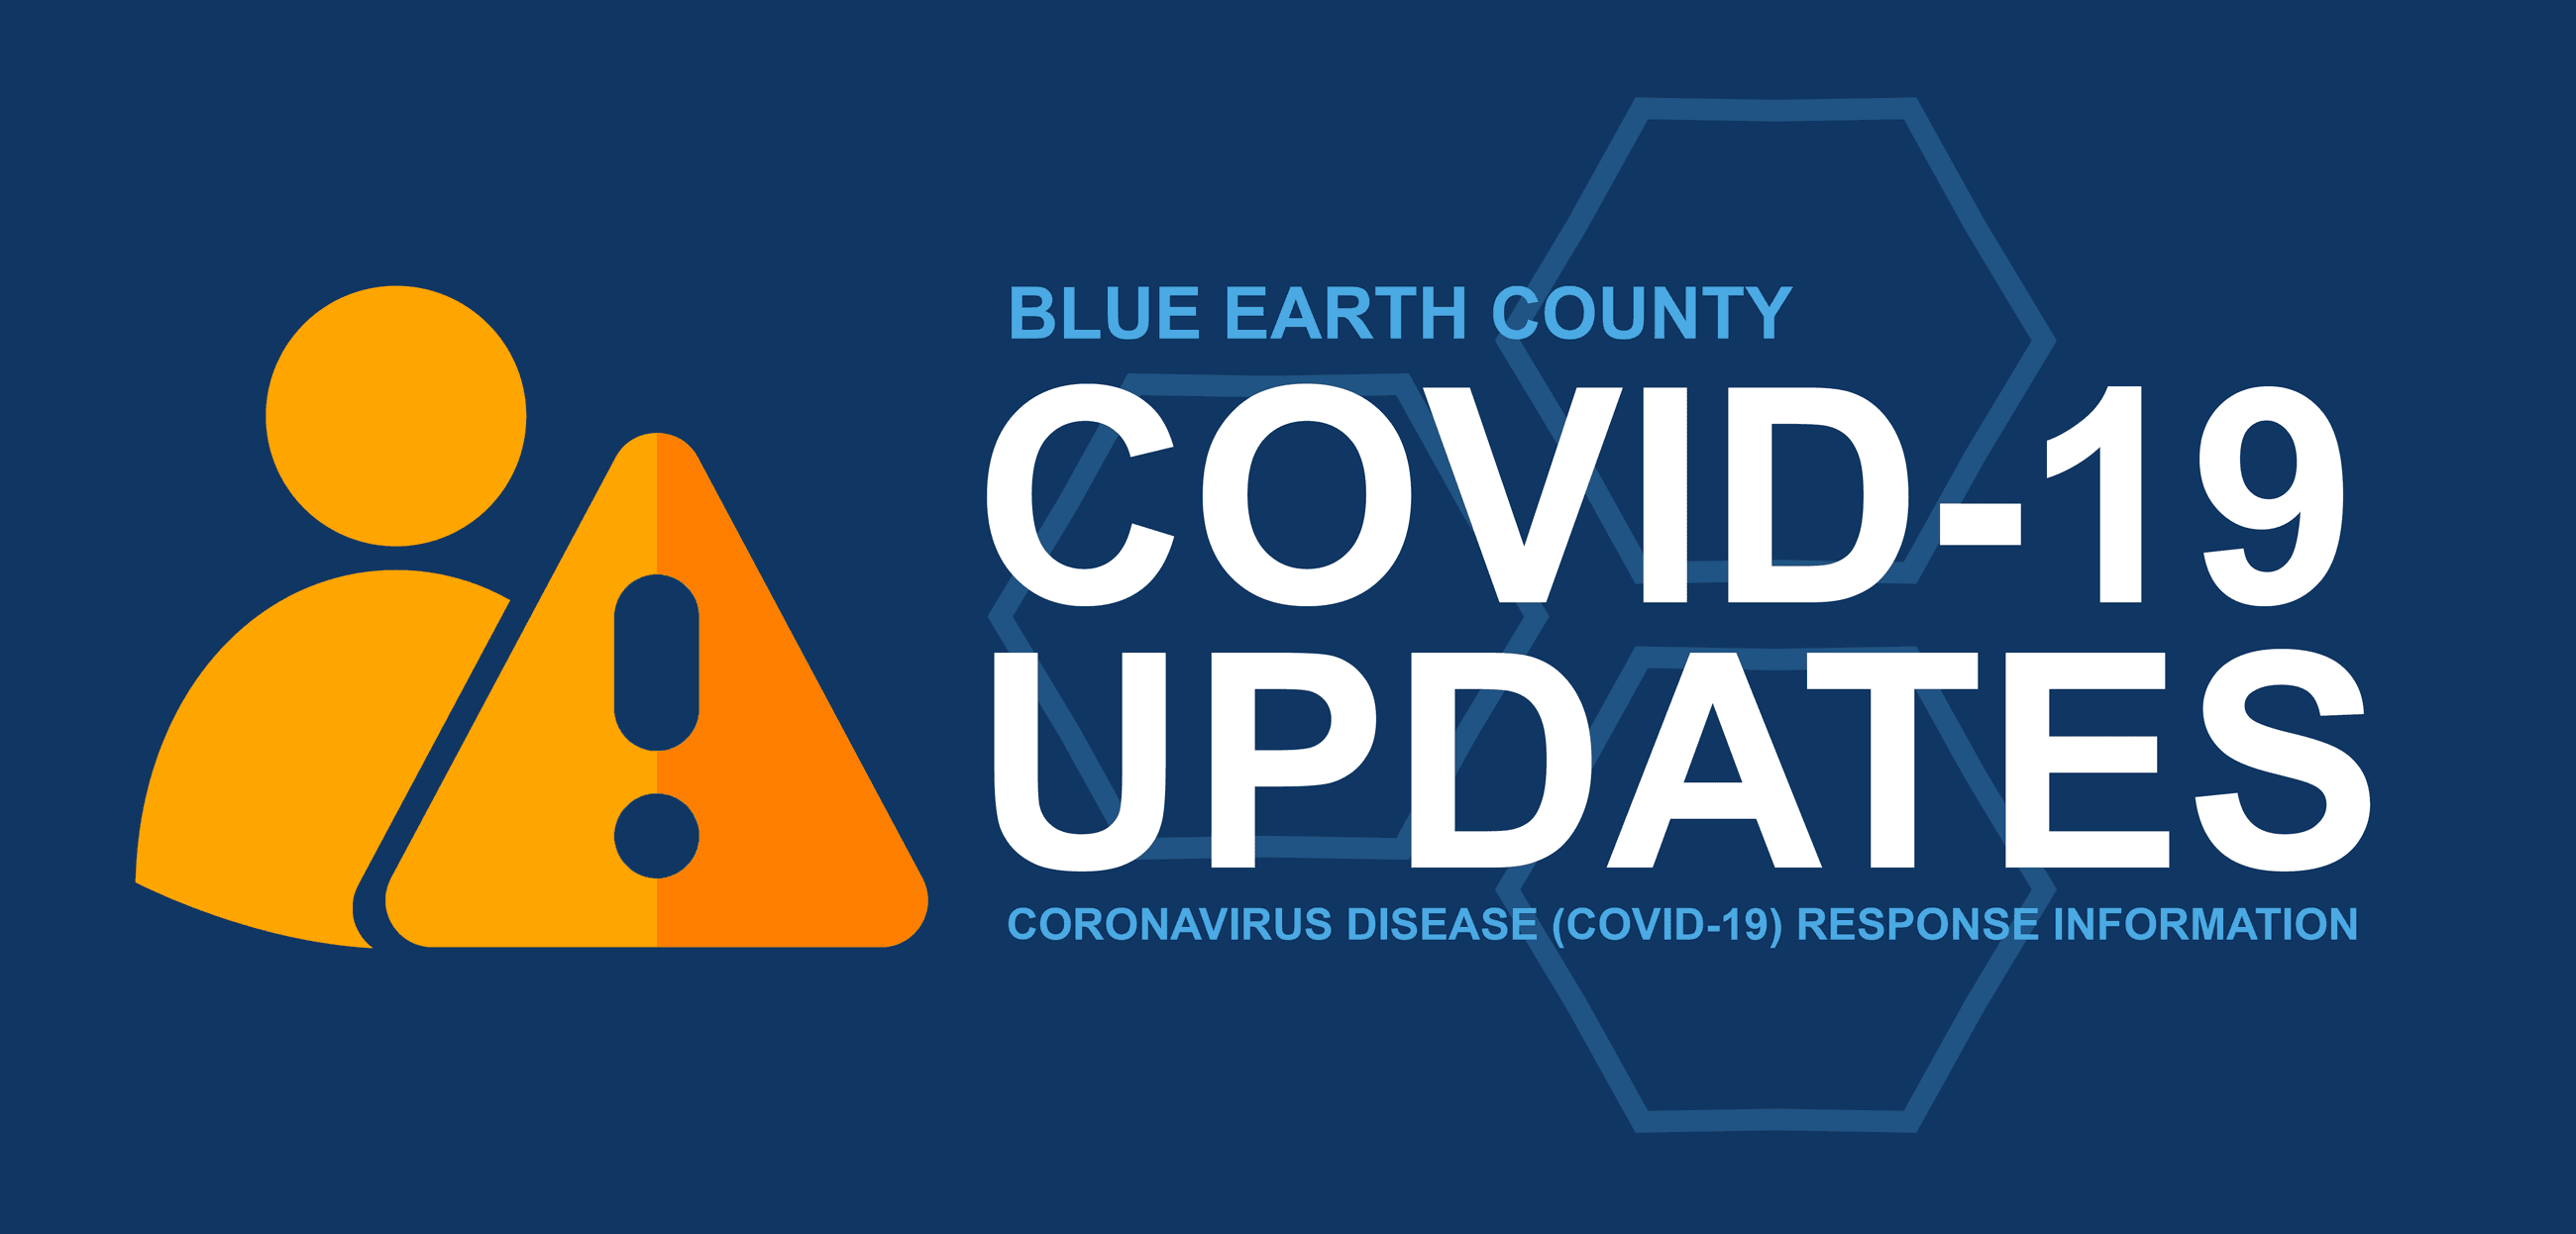 Blue Earth County COVID-19 Updates